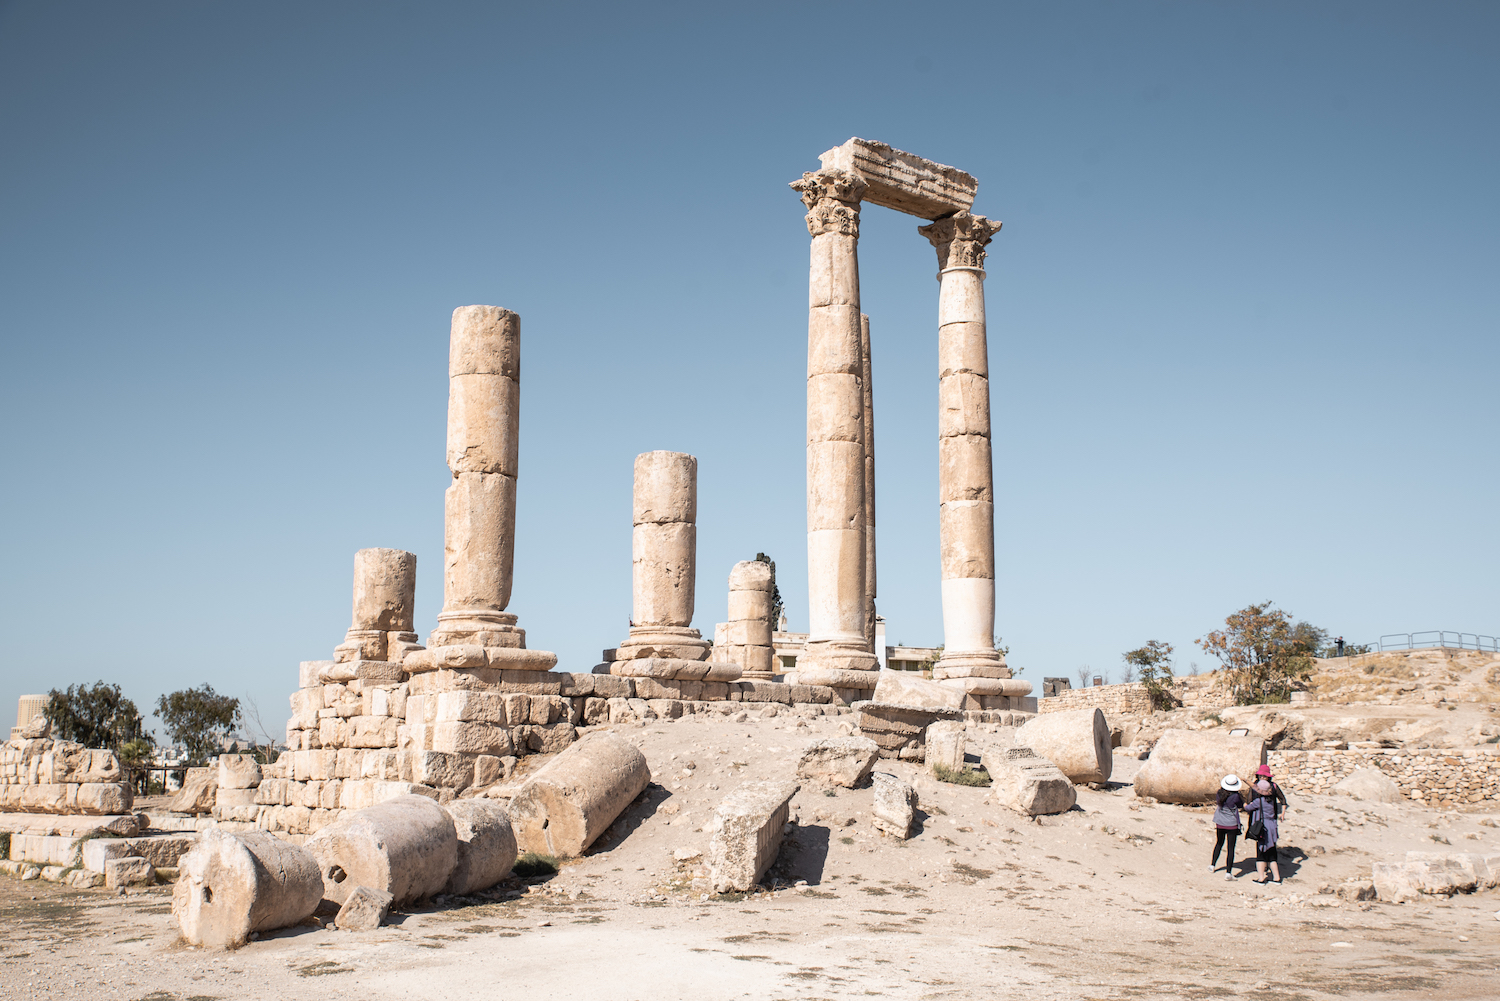 Temple of Hercules, Amman Citadel, Jordan - by Ben Holbrook from DriftwoodJournals.com